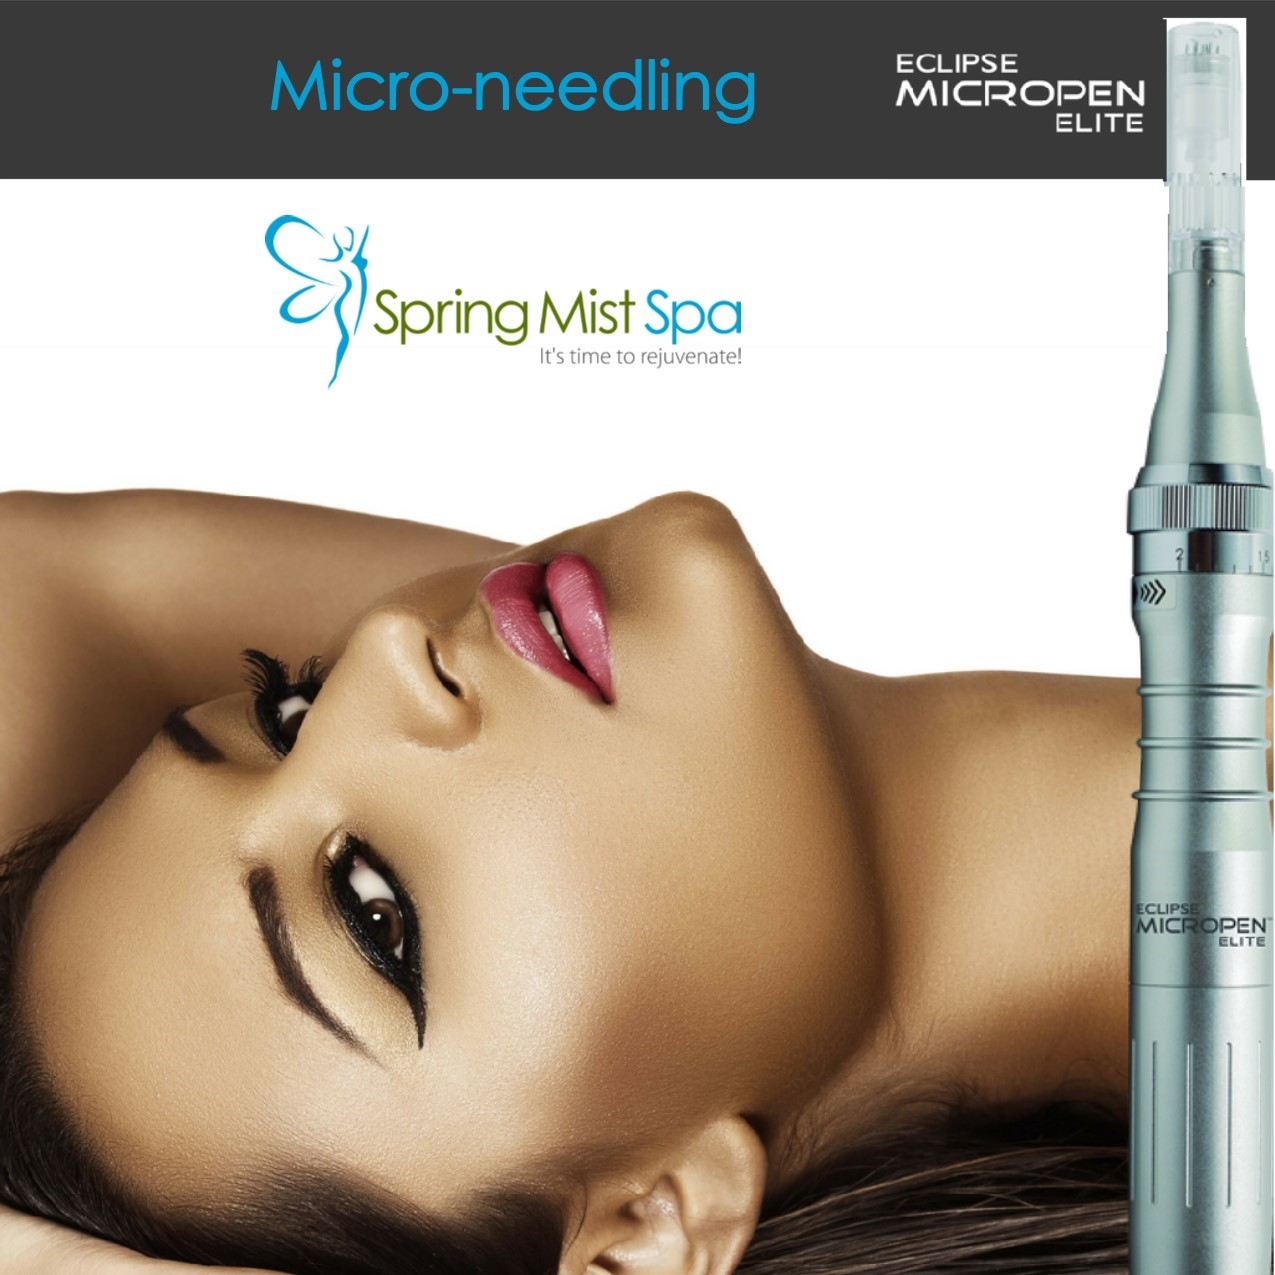 Spring Mist Milton Spa - Get rid of wrinkles, fine lines, acne scars with microneedling at Spring Mist Spa Milton